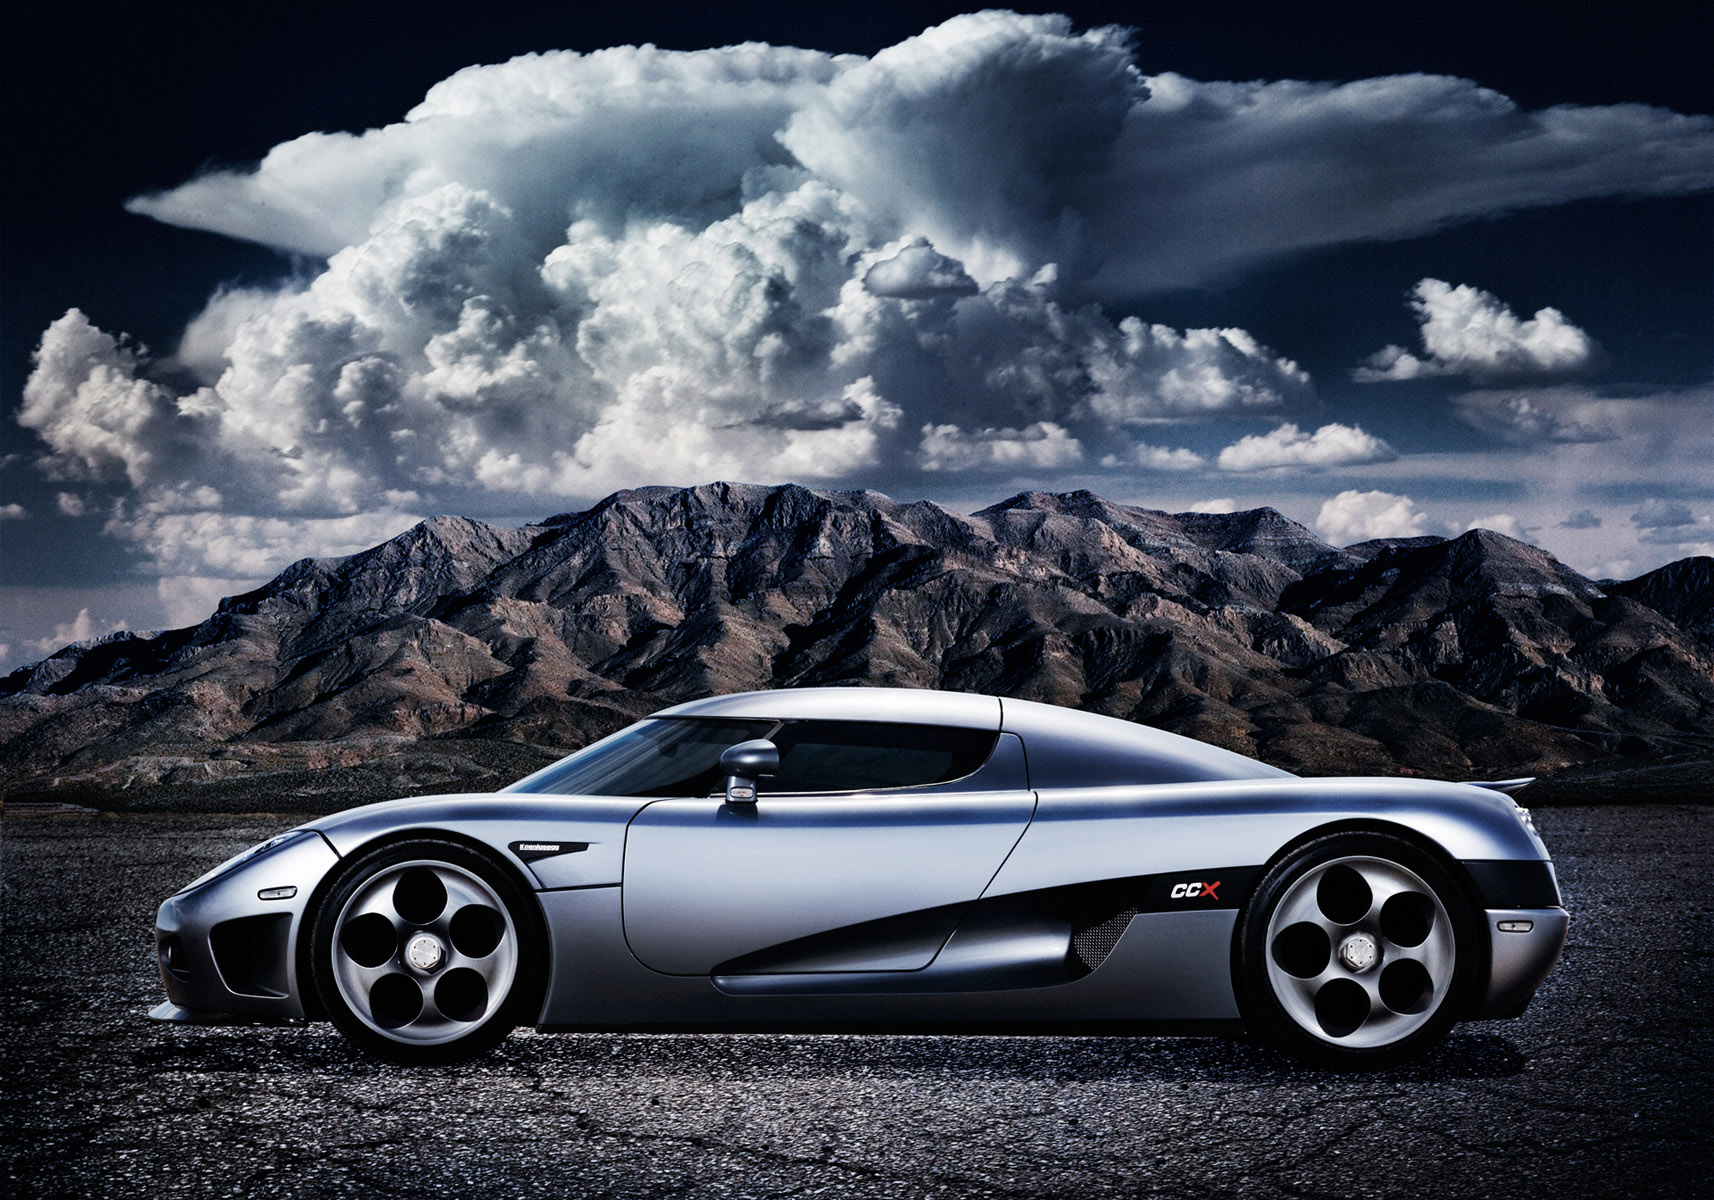 Koenigsegg CCX Car Photographer Blair Bunting